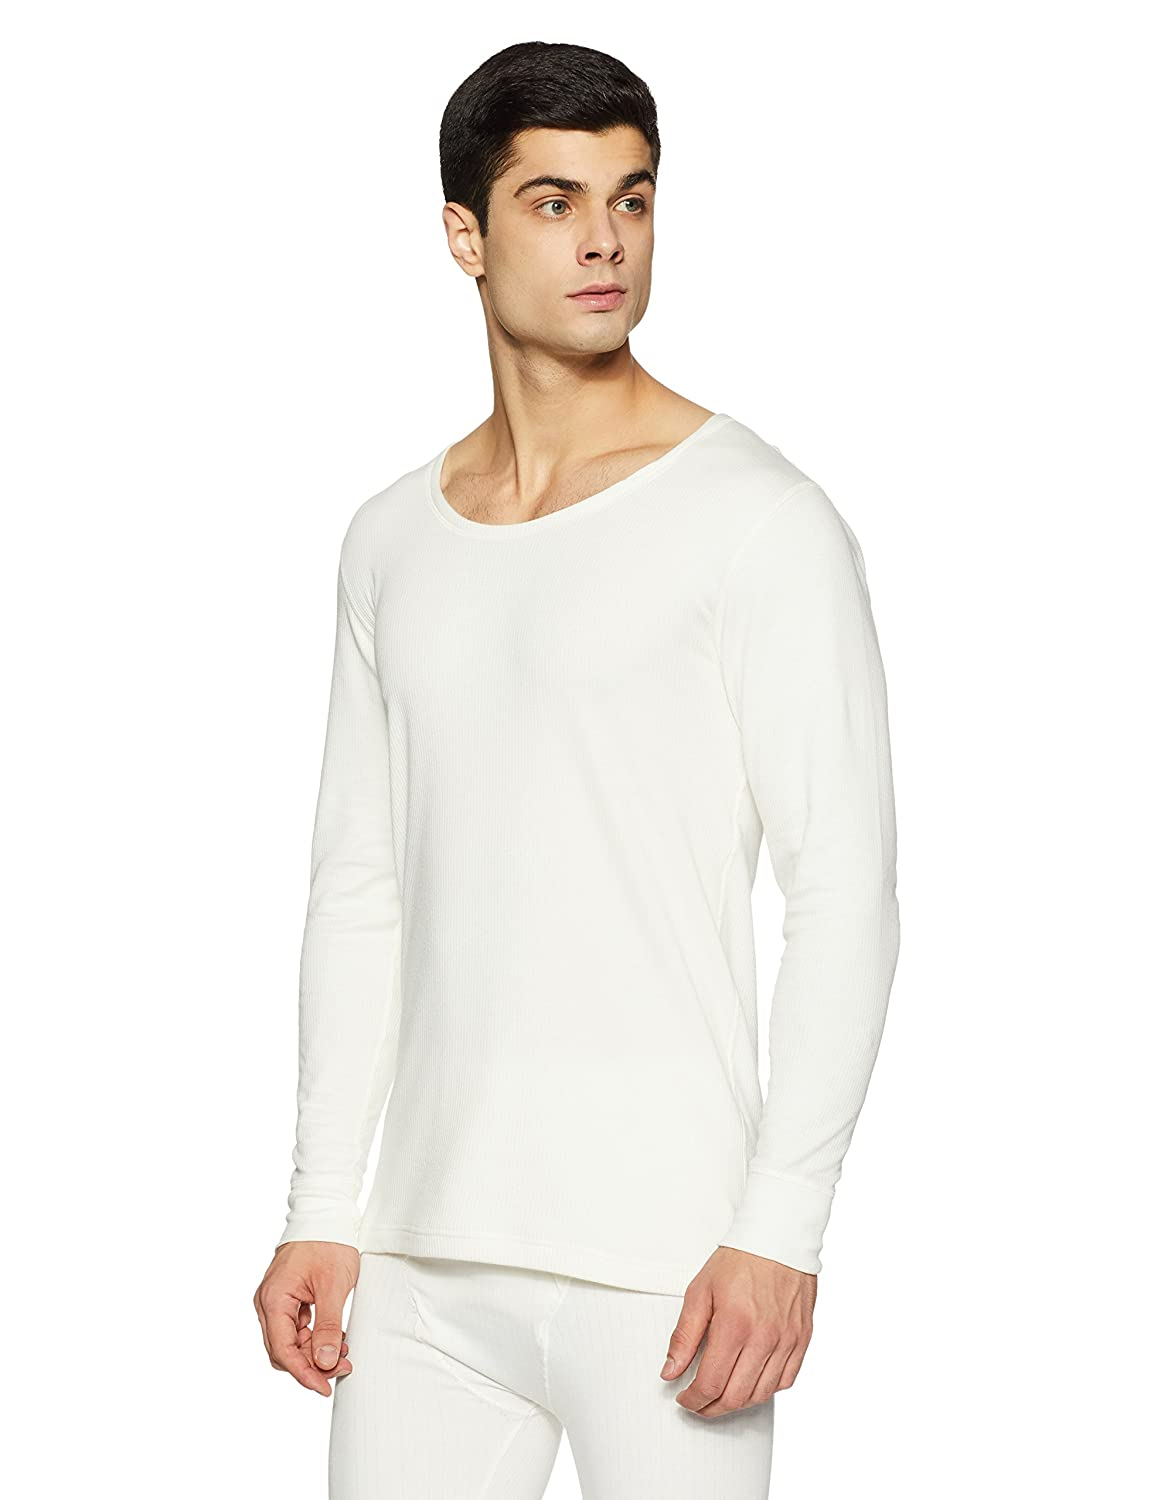 Jockey Men s Cotton Thermal Vest  Amazon.in  Clothing   Accessories 301481289